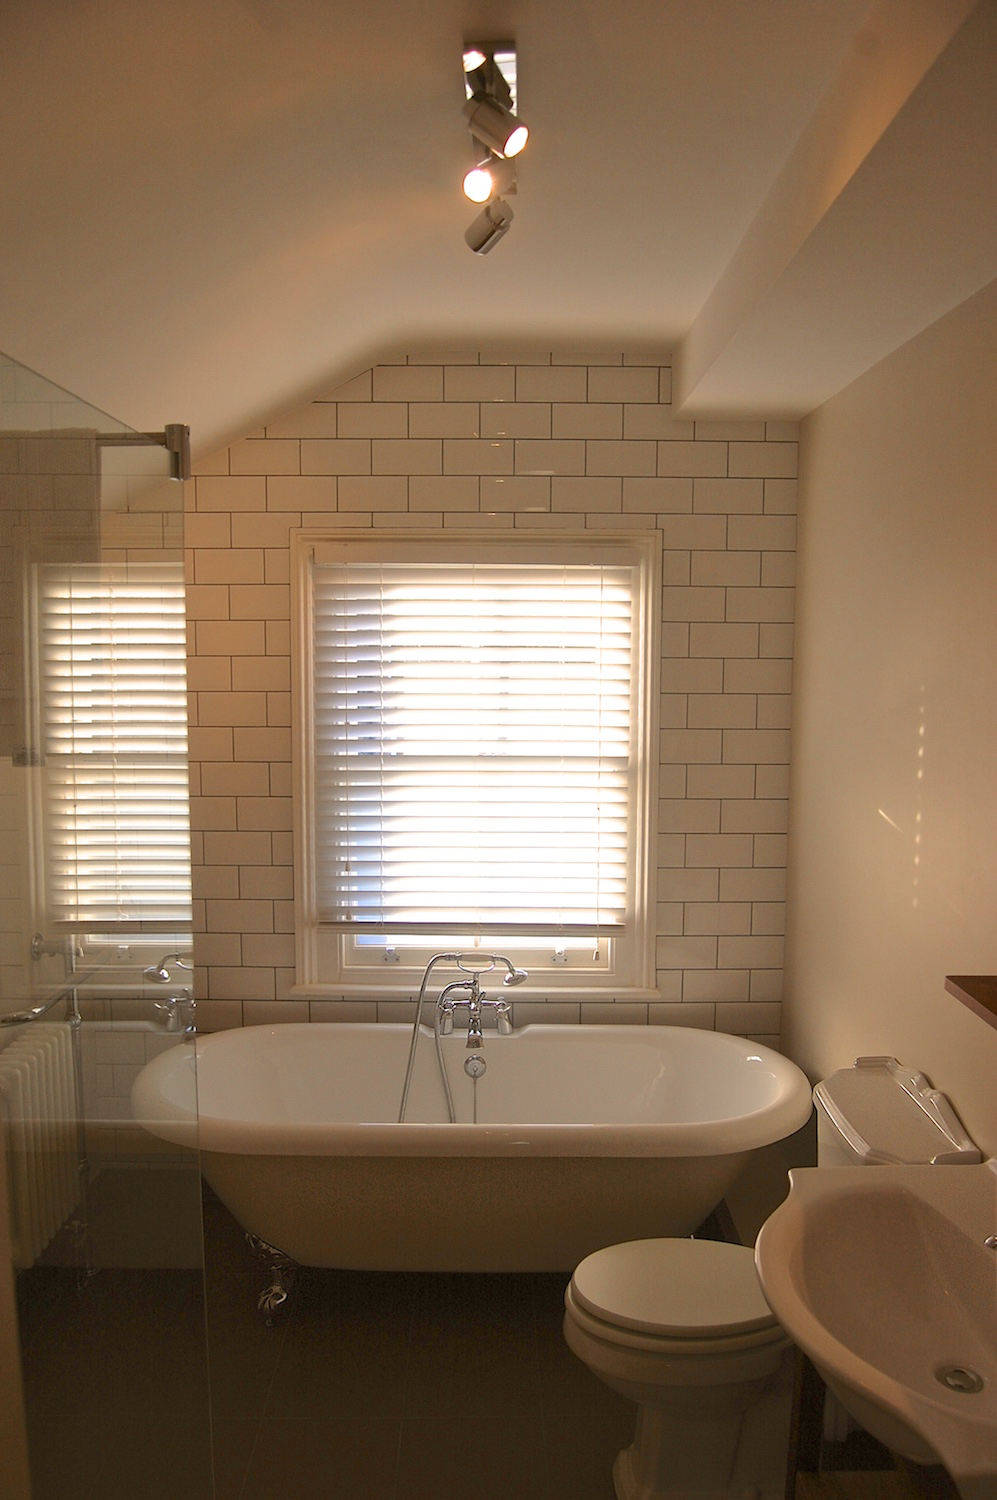 Bathroom in Richmond EuroTiles Tavistock Burlington Retreat Bathrooms Design - 2.jpg